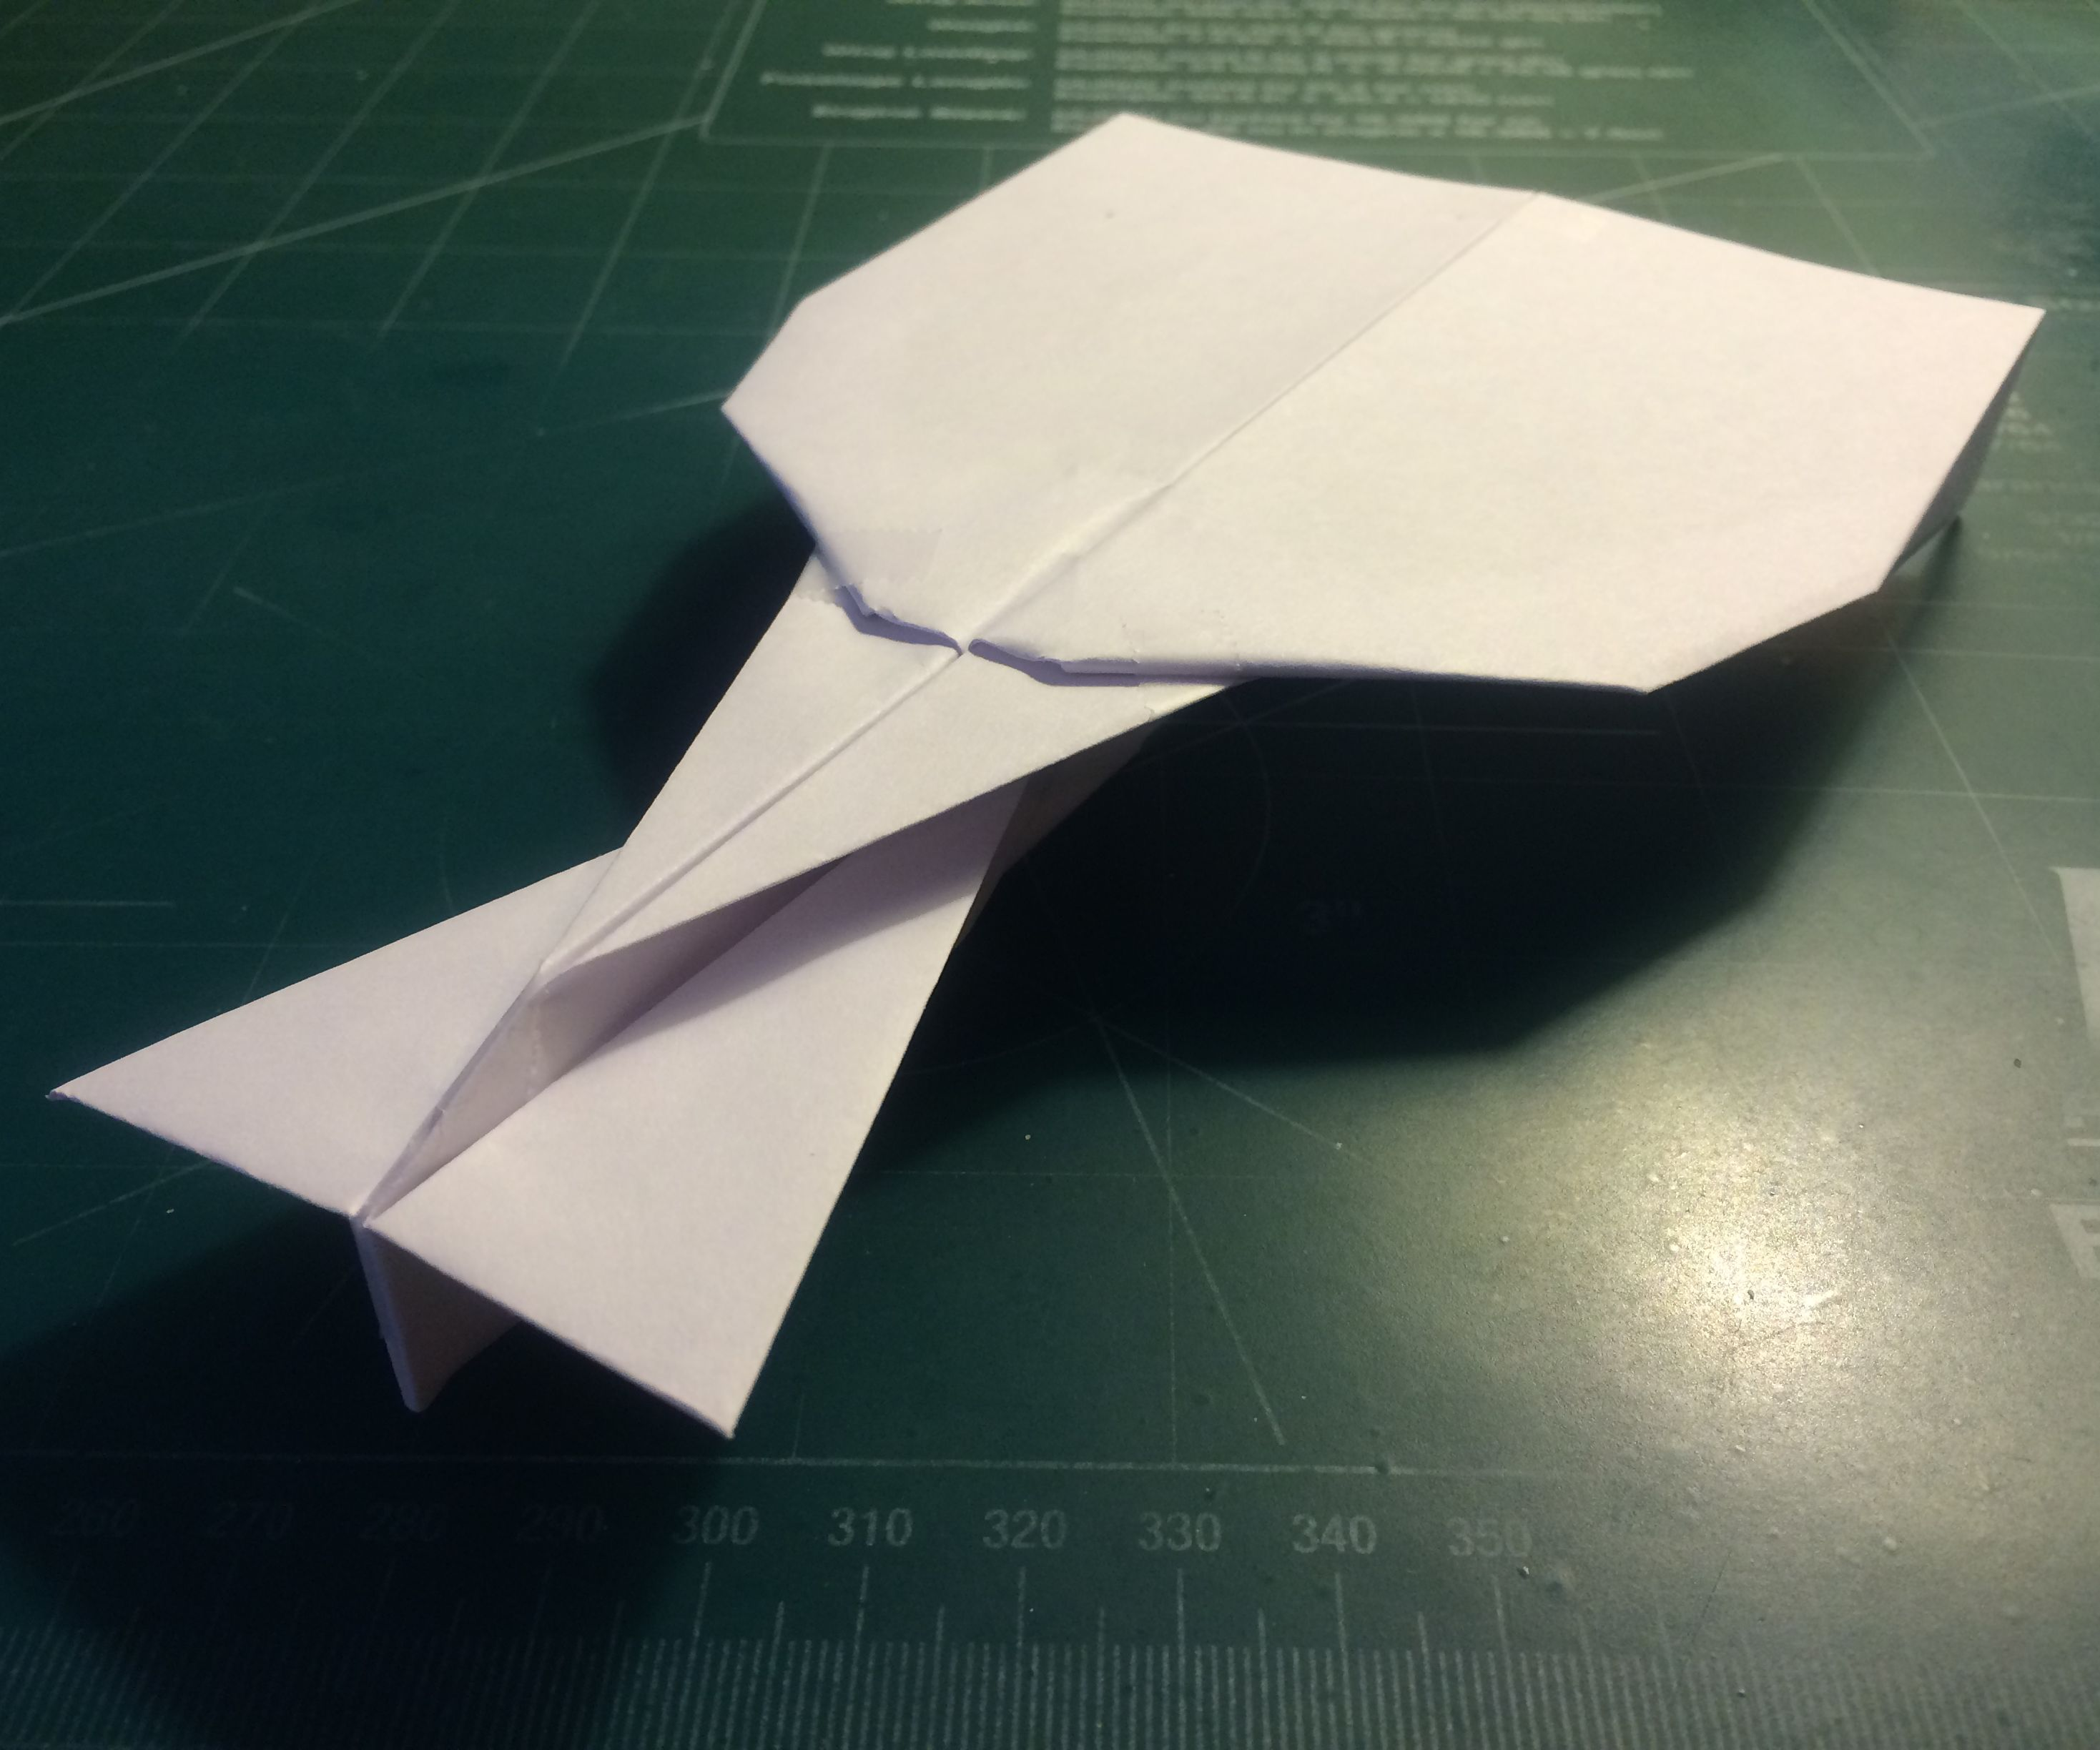 How To Make The Turbo UltraVulcan Paper Airplane